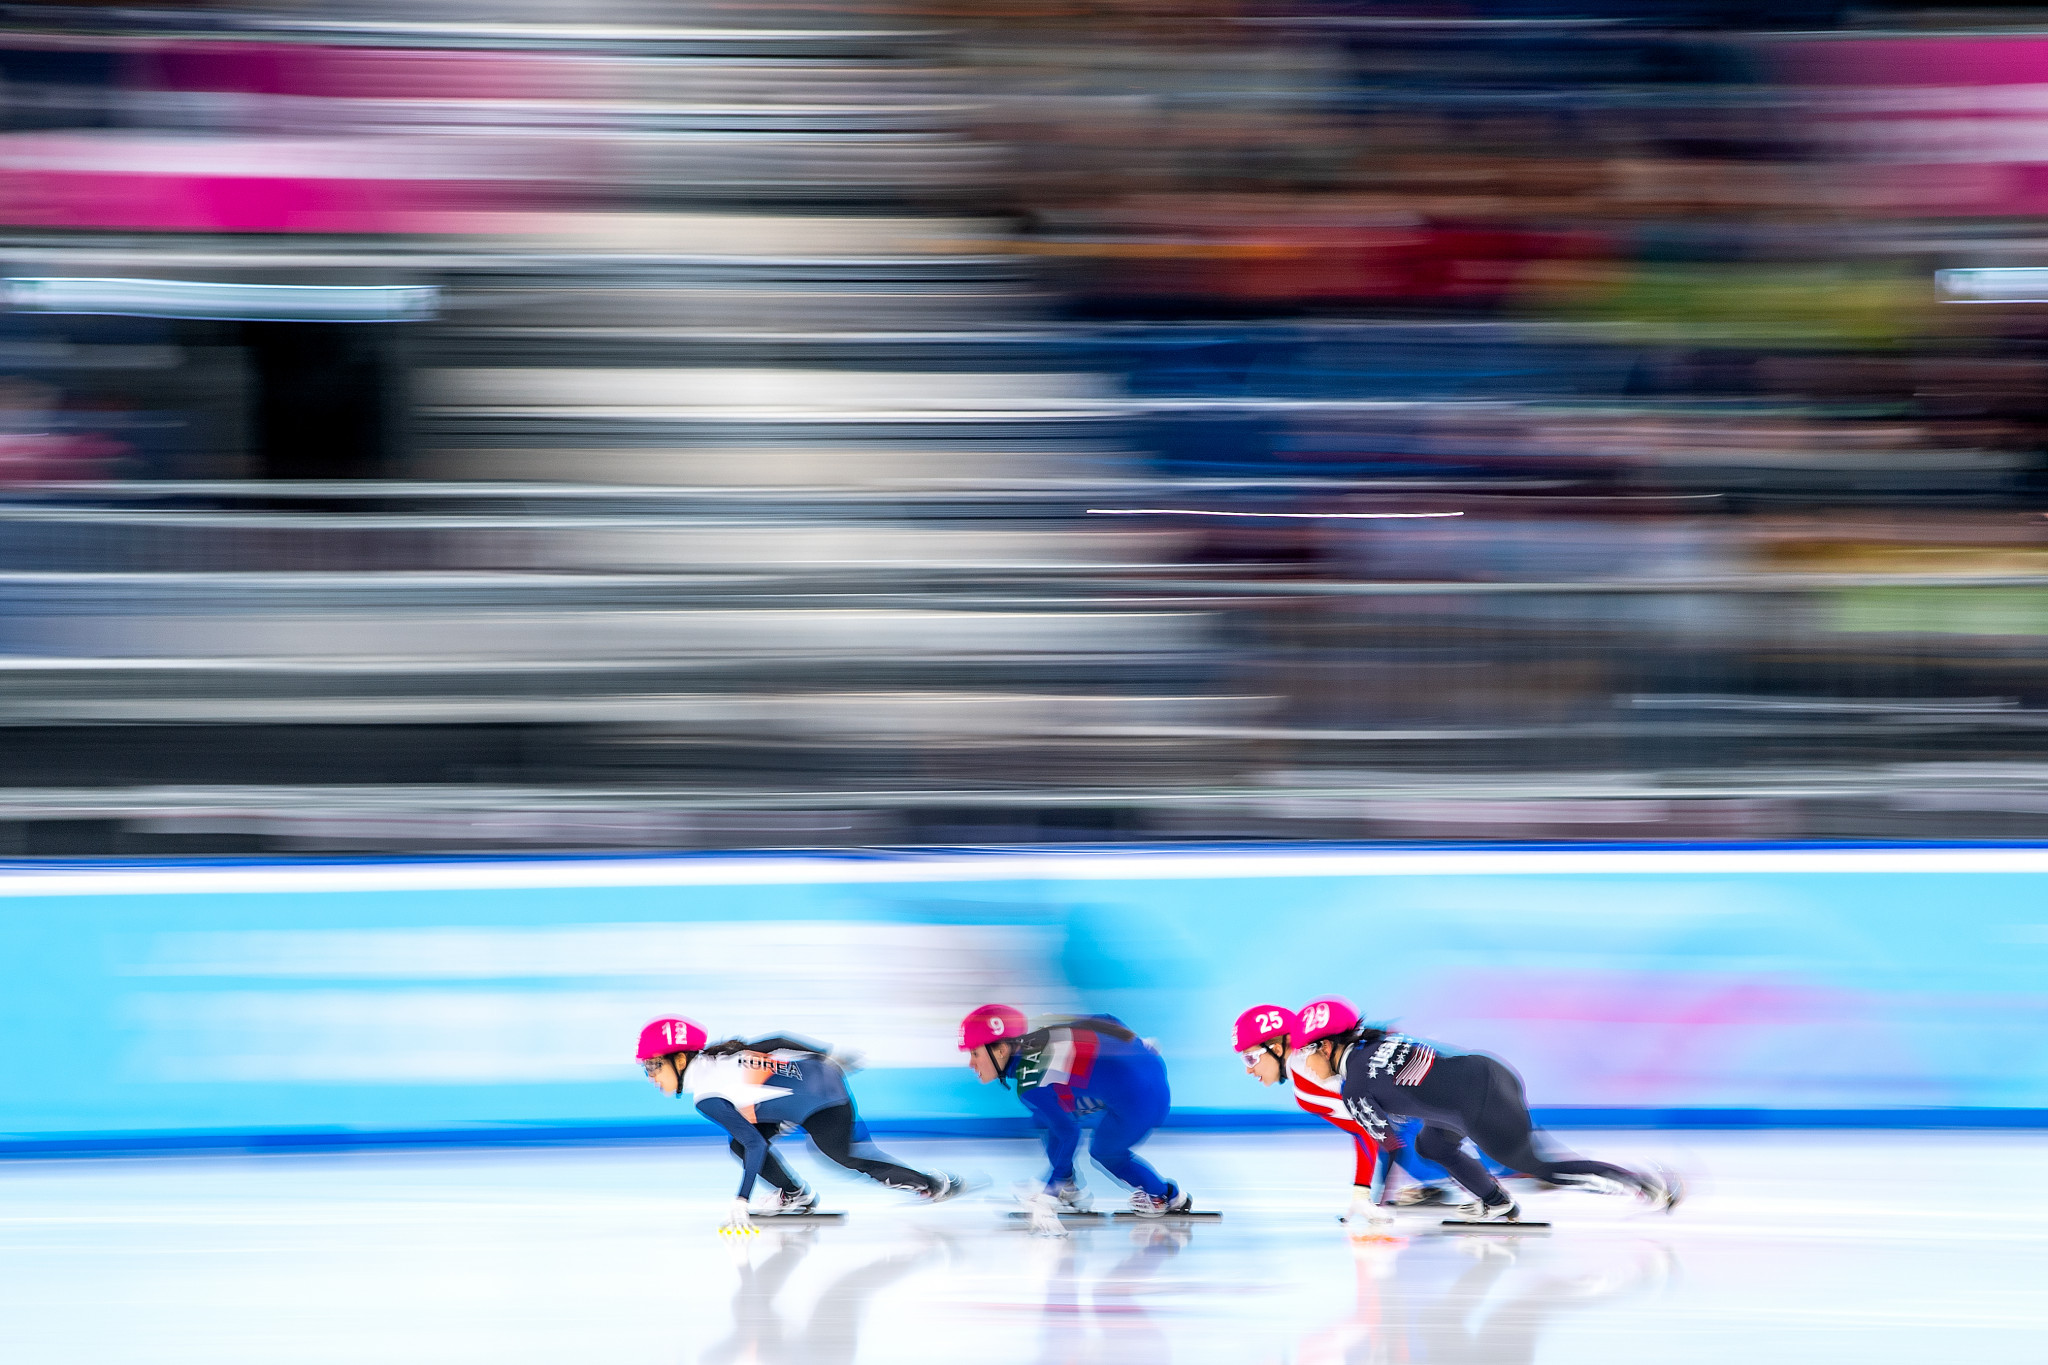 IOC claim Lausanne 2020 enjoyed record digital coverage for Winter Youth Olympics